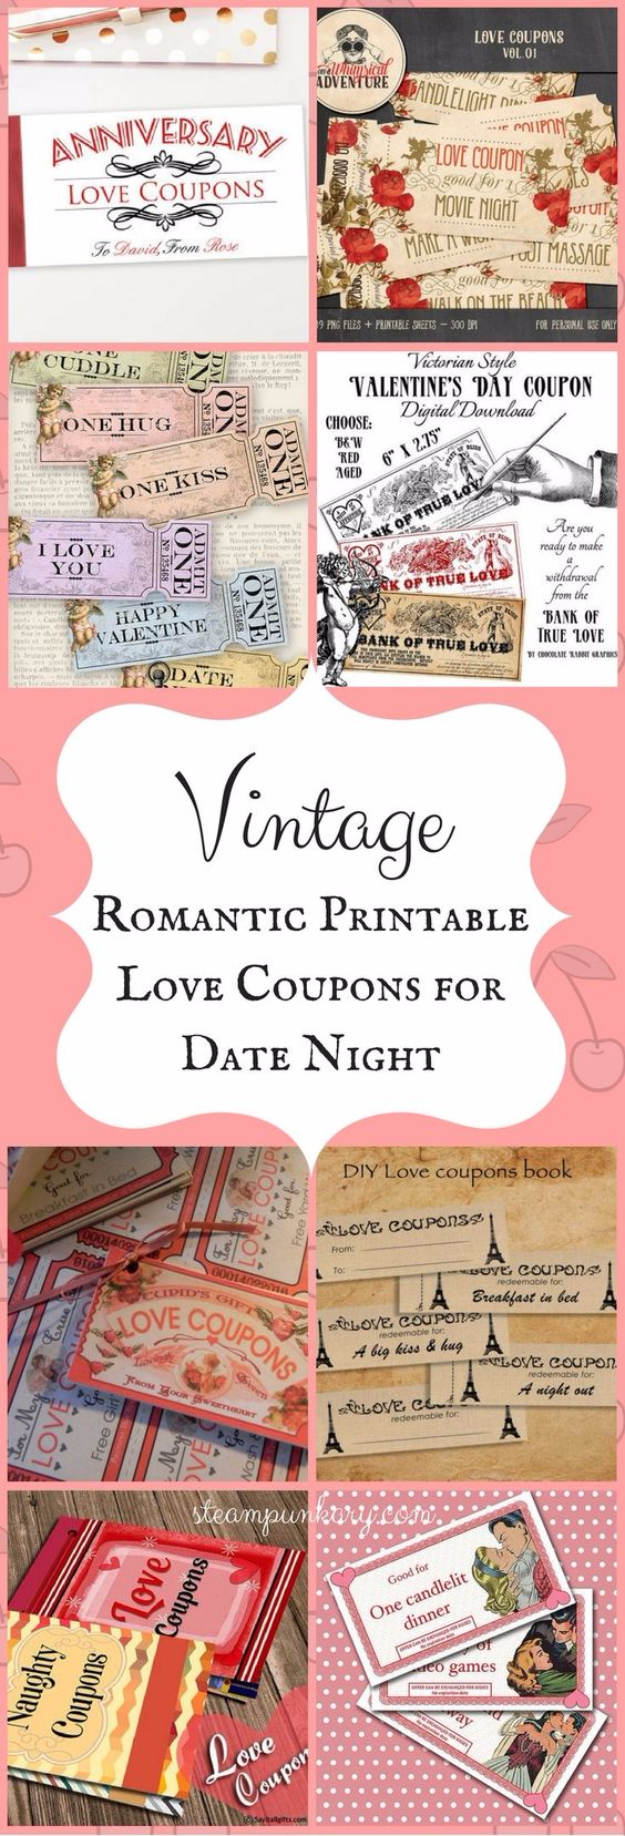 DIY Date Night Ideas - Vintage Love Coupons For Date Night - Creative Ways to Go On Inexpensive Dates - Creative Ways for Couples to Spend Time Together creative date nights diy idea